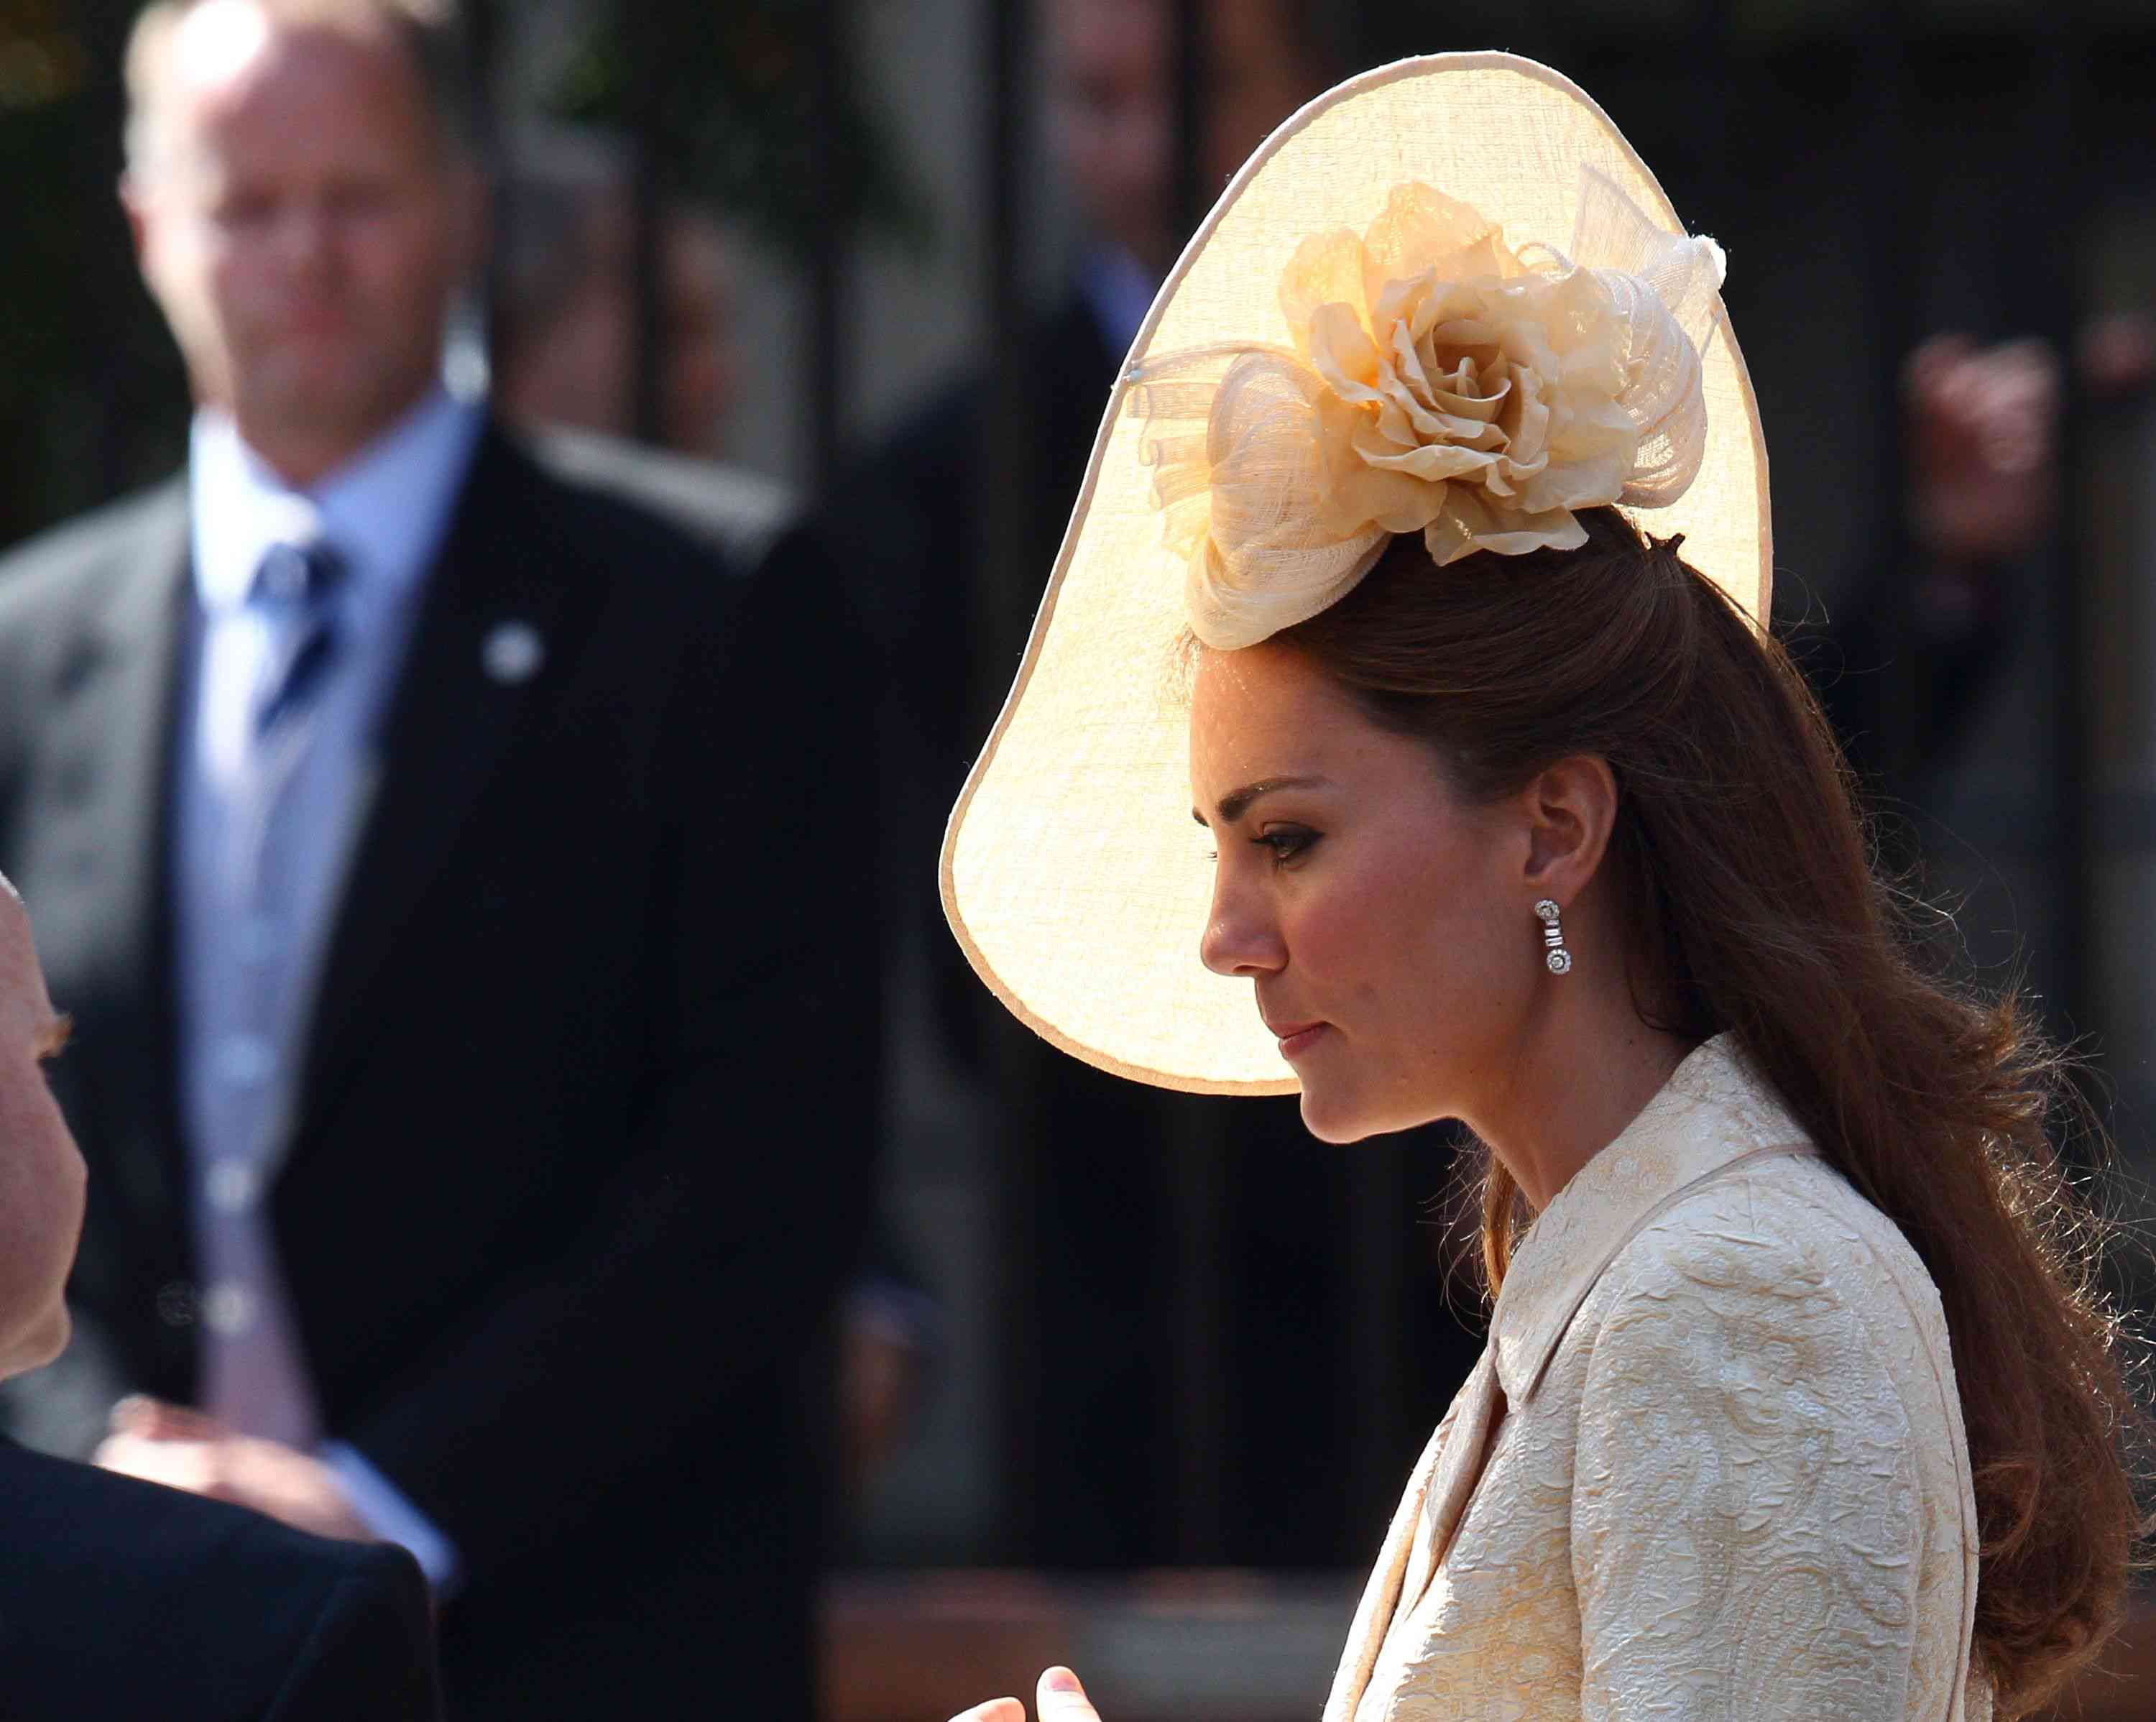 Kate Middleton departs for the Royal wedding of Zara Phillips and Mike Tindall at Canongate Kirk